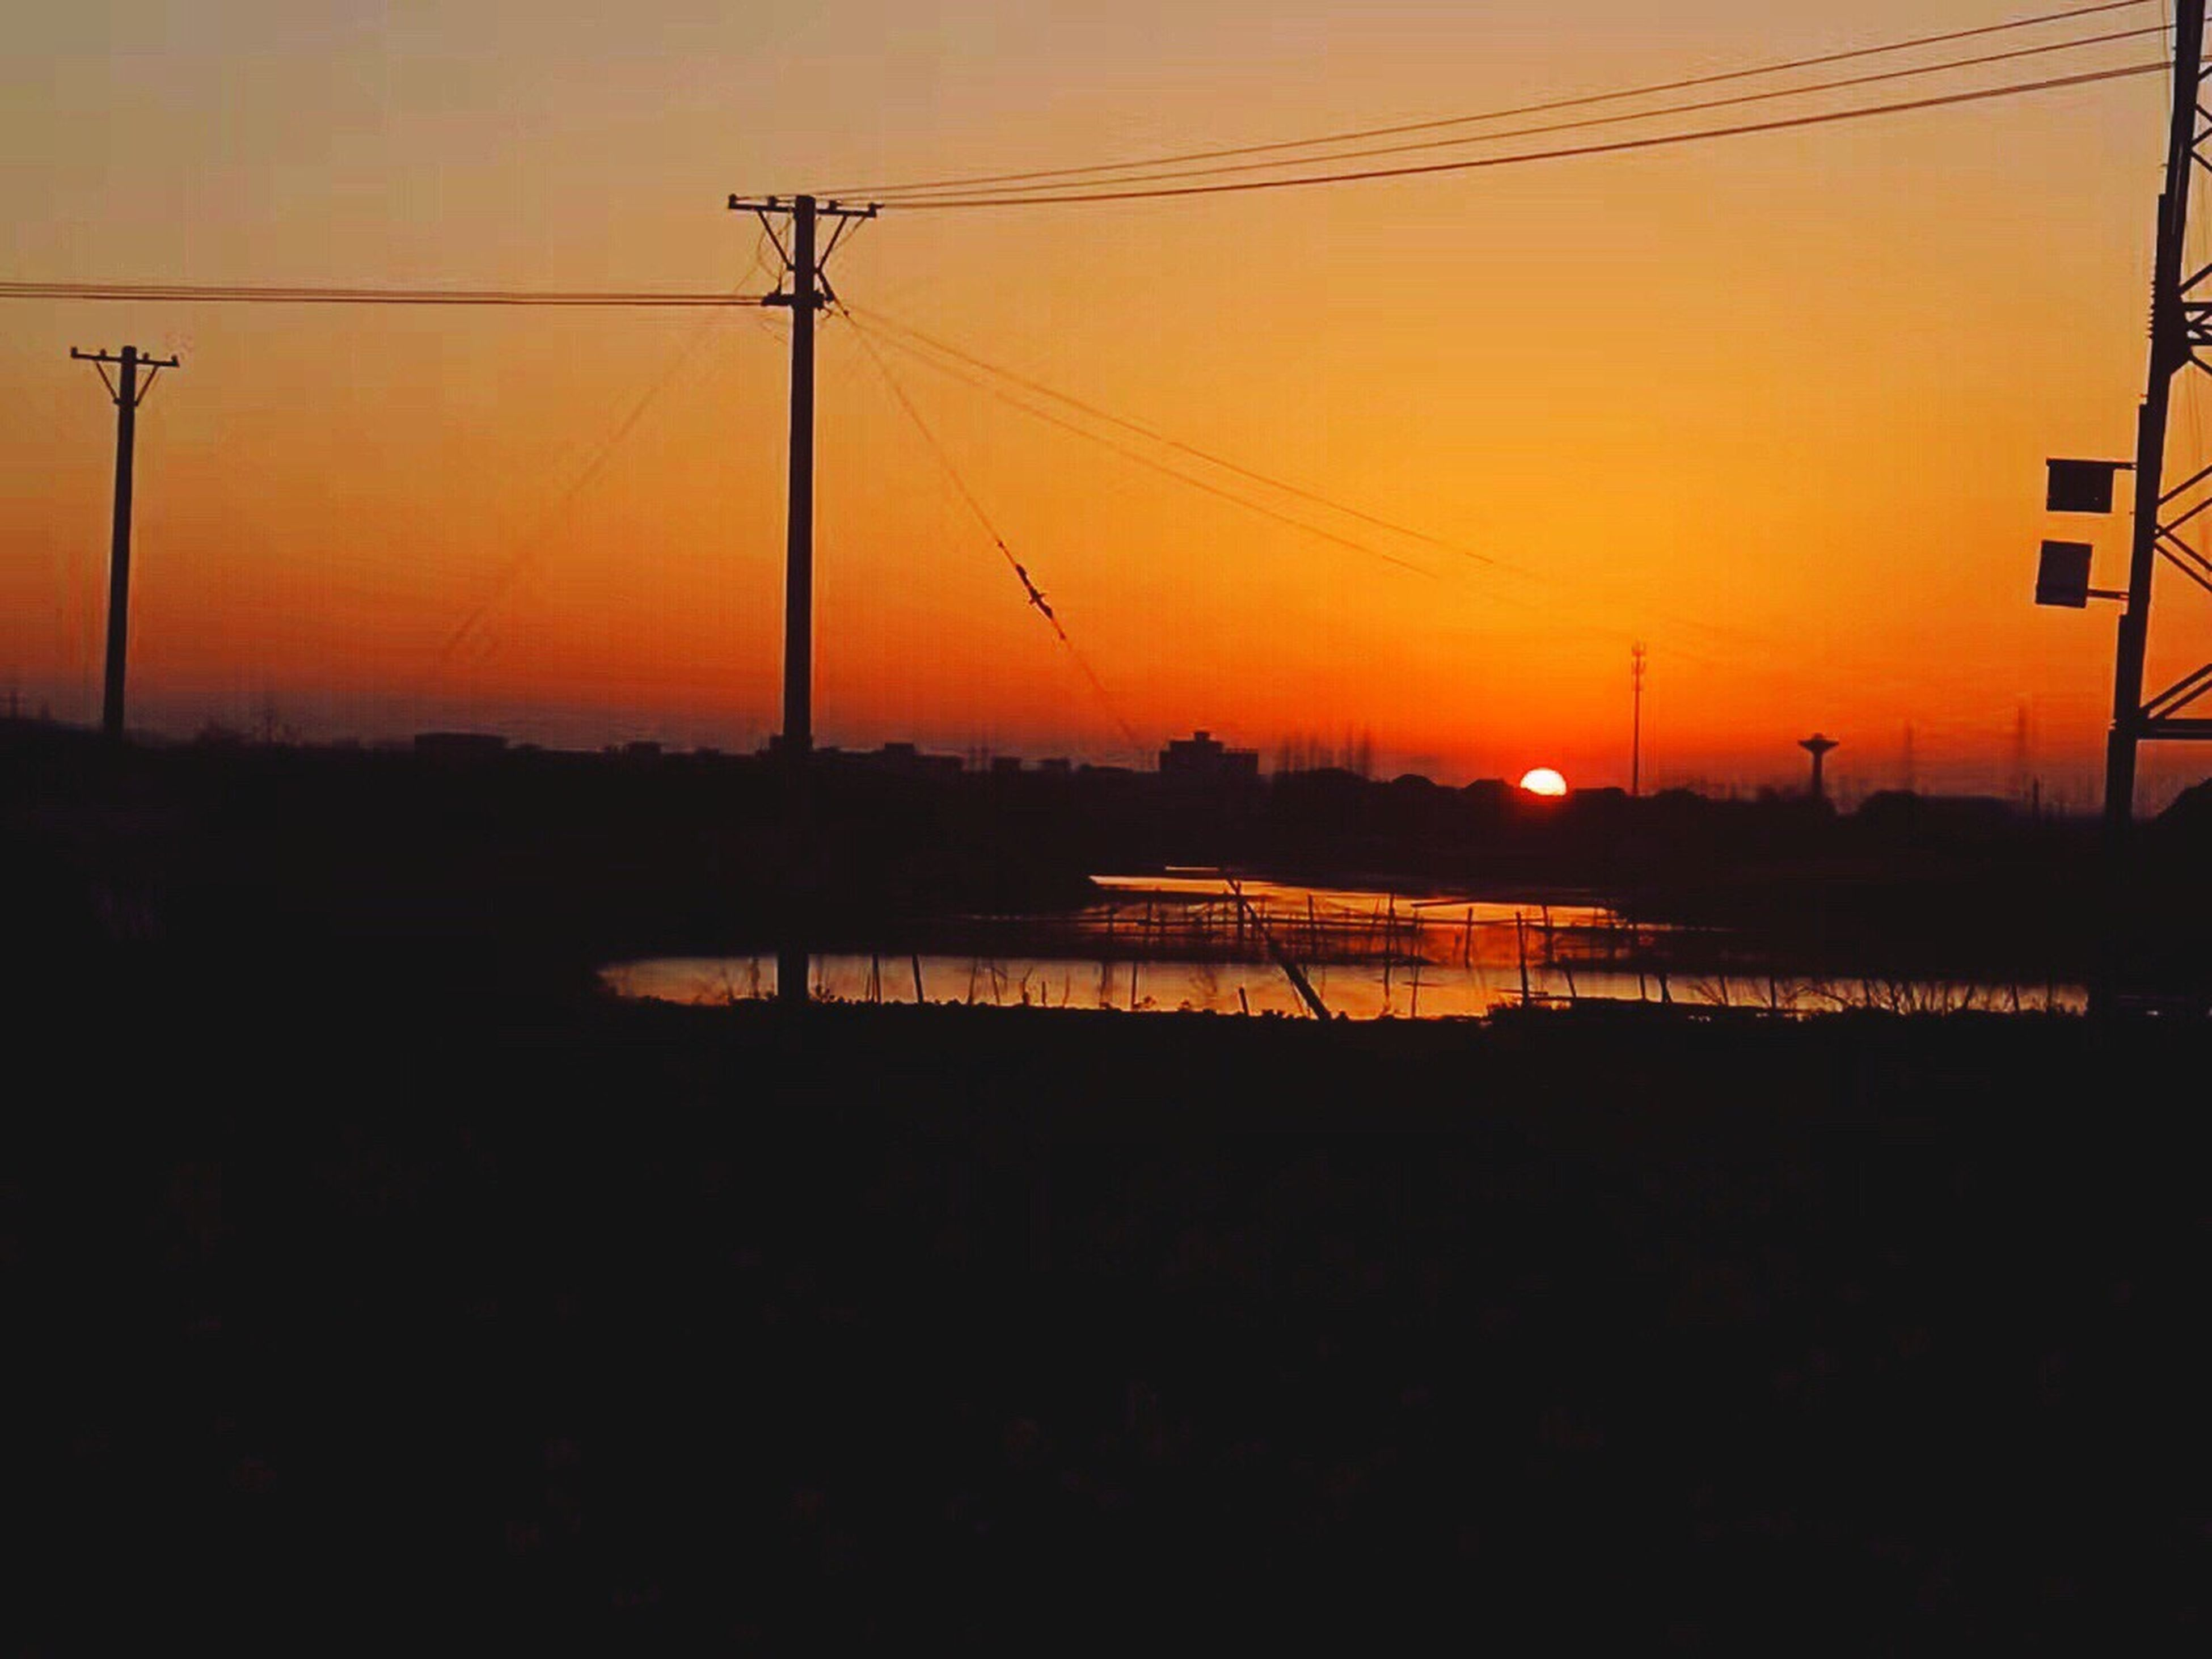 sunset, silhouette, electricity, outdoors, power line, no people, dramatic sky, sky, connection, illuminated, sun, beauty in nature, scenics, telephone line, electricity pylon